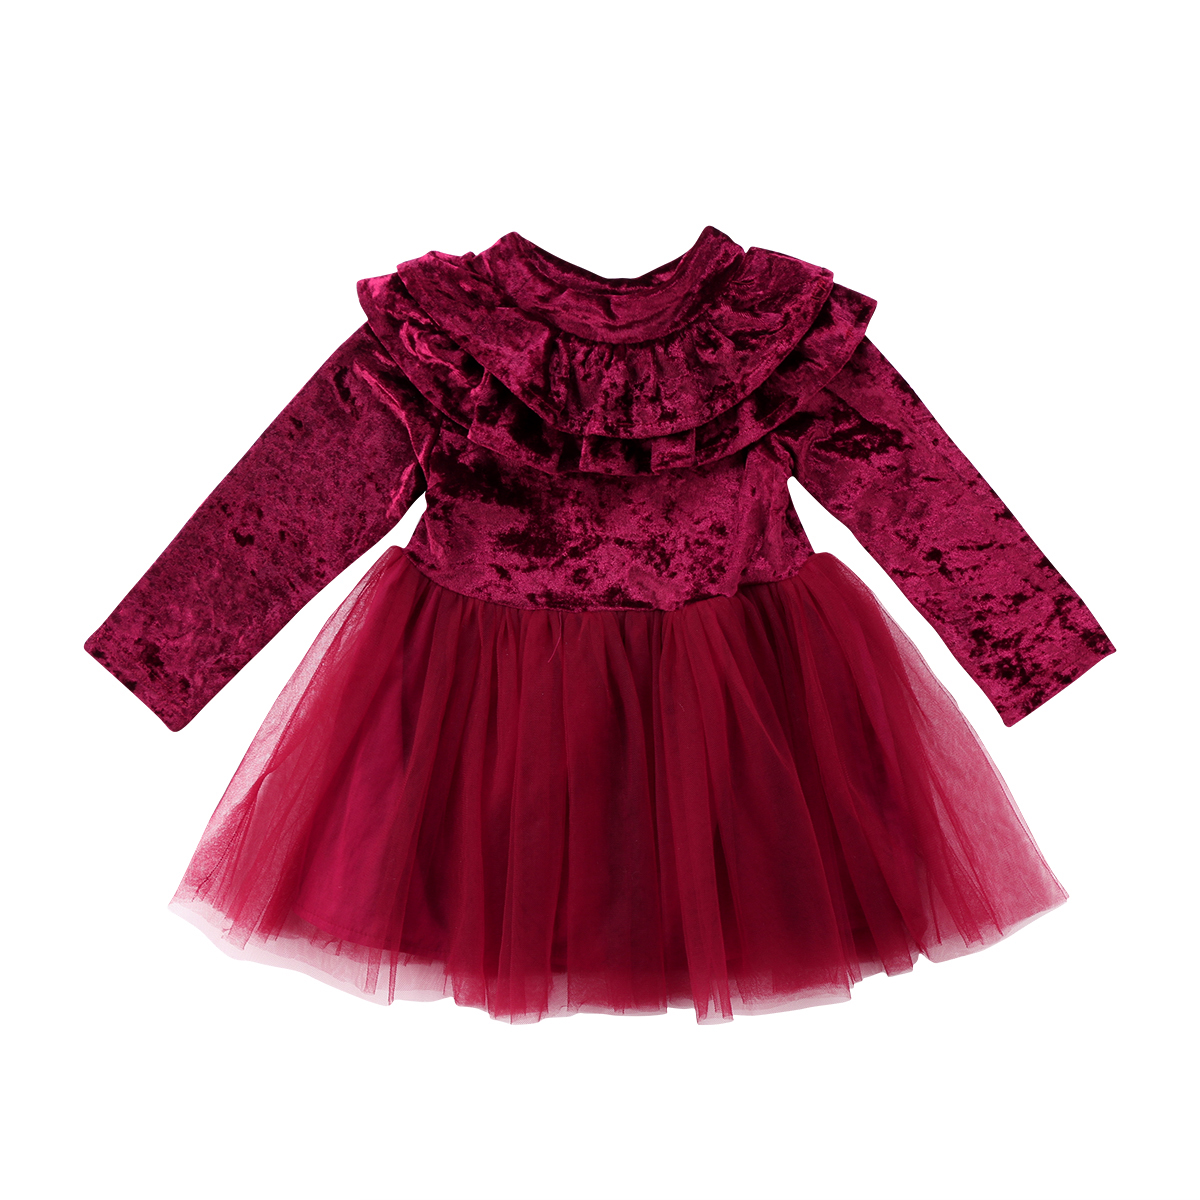 Princess Kids Baby Girls Dress Velvet Fleece Long Sleeve Midi Cute Tiered Tutu Party Ruffle Tulle Tutu Dresses Girl 1-6T girls tiered ruffle hem flare skirt